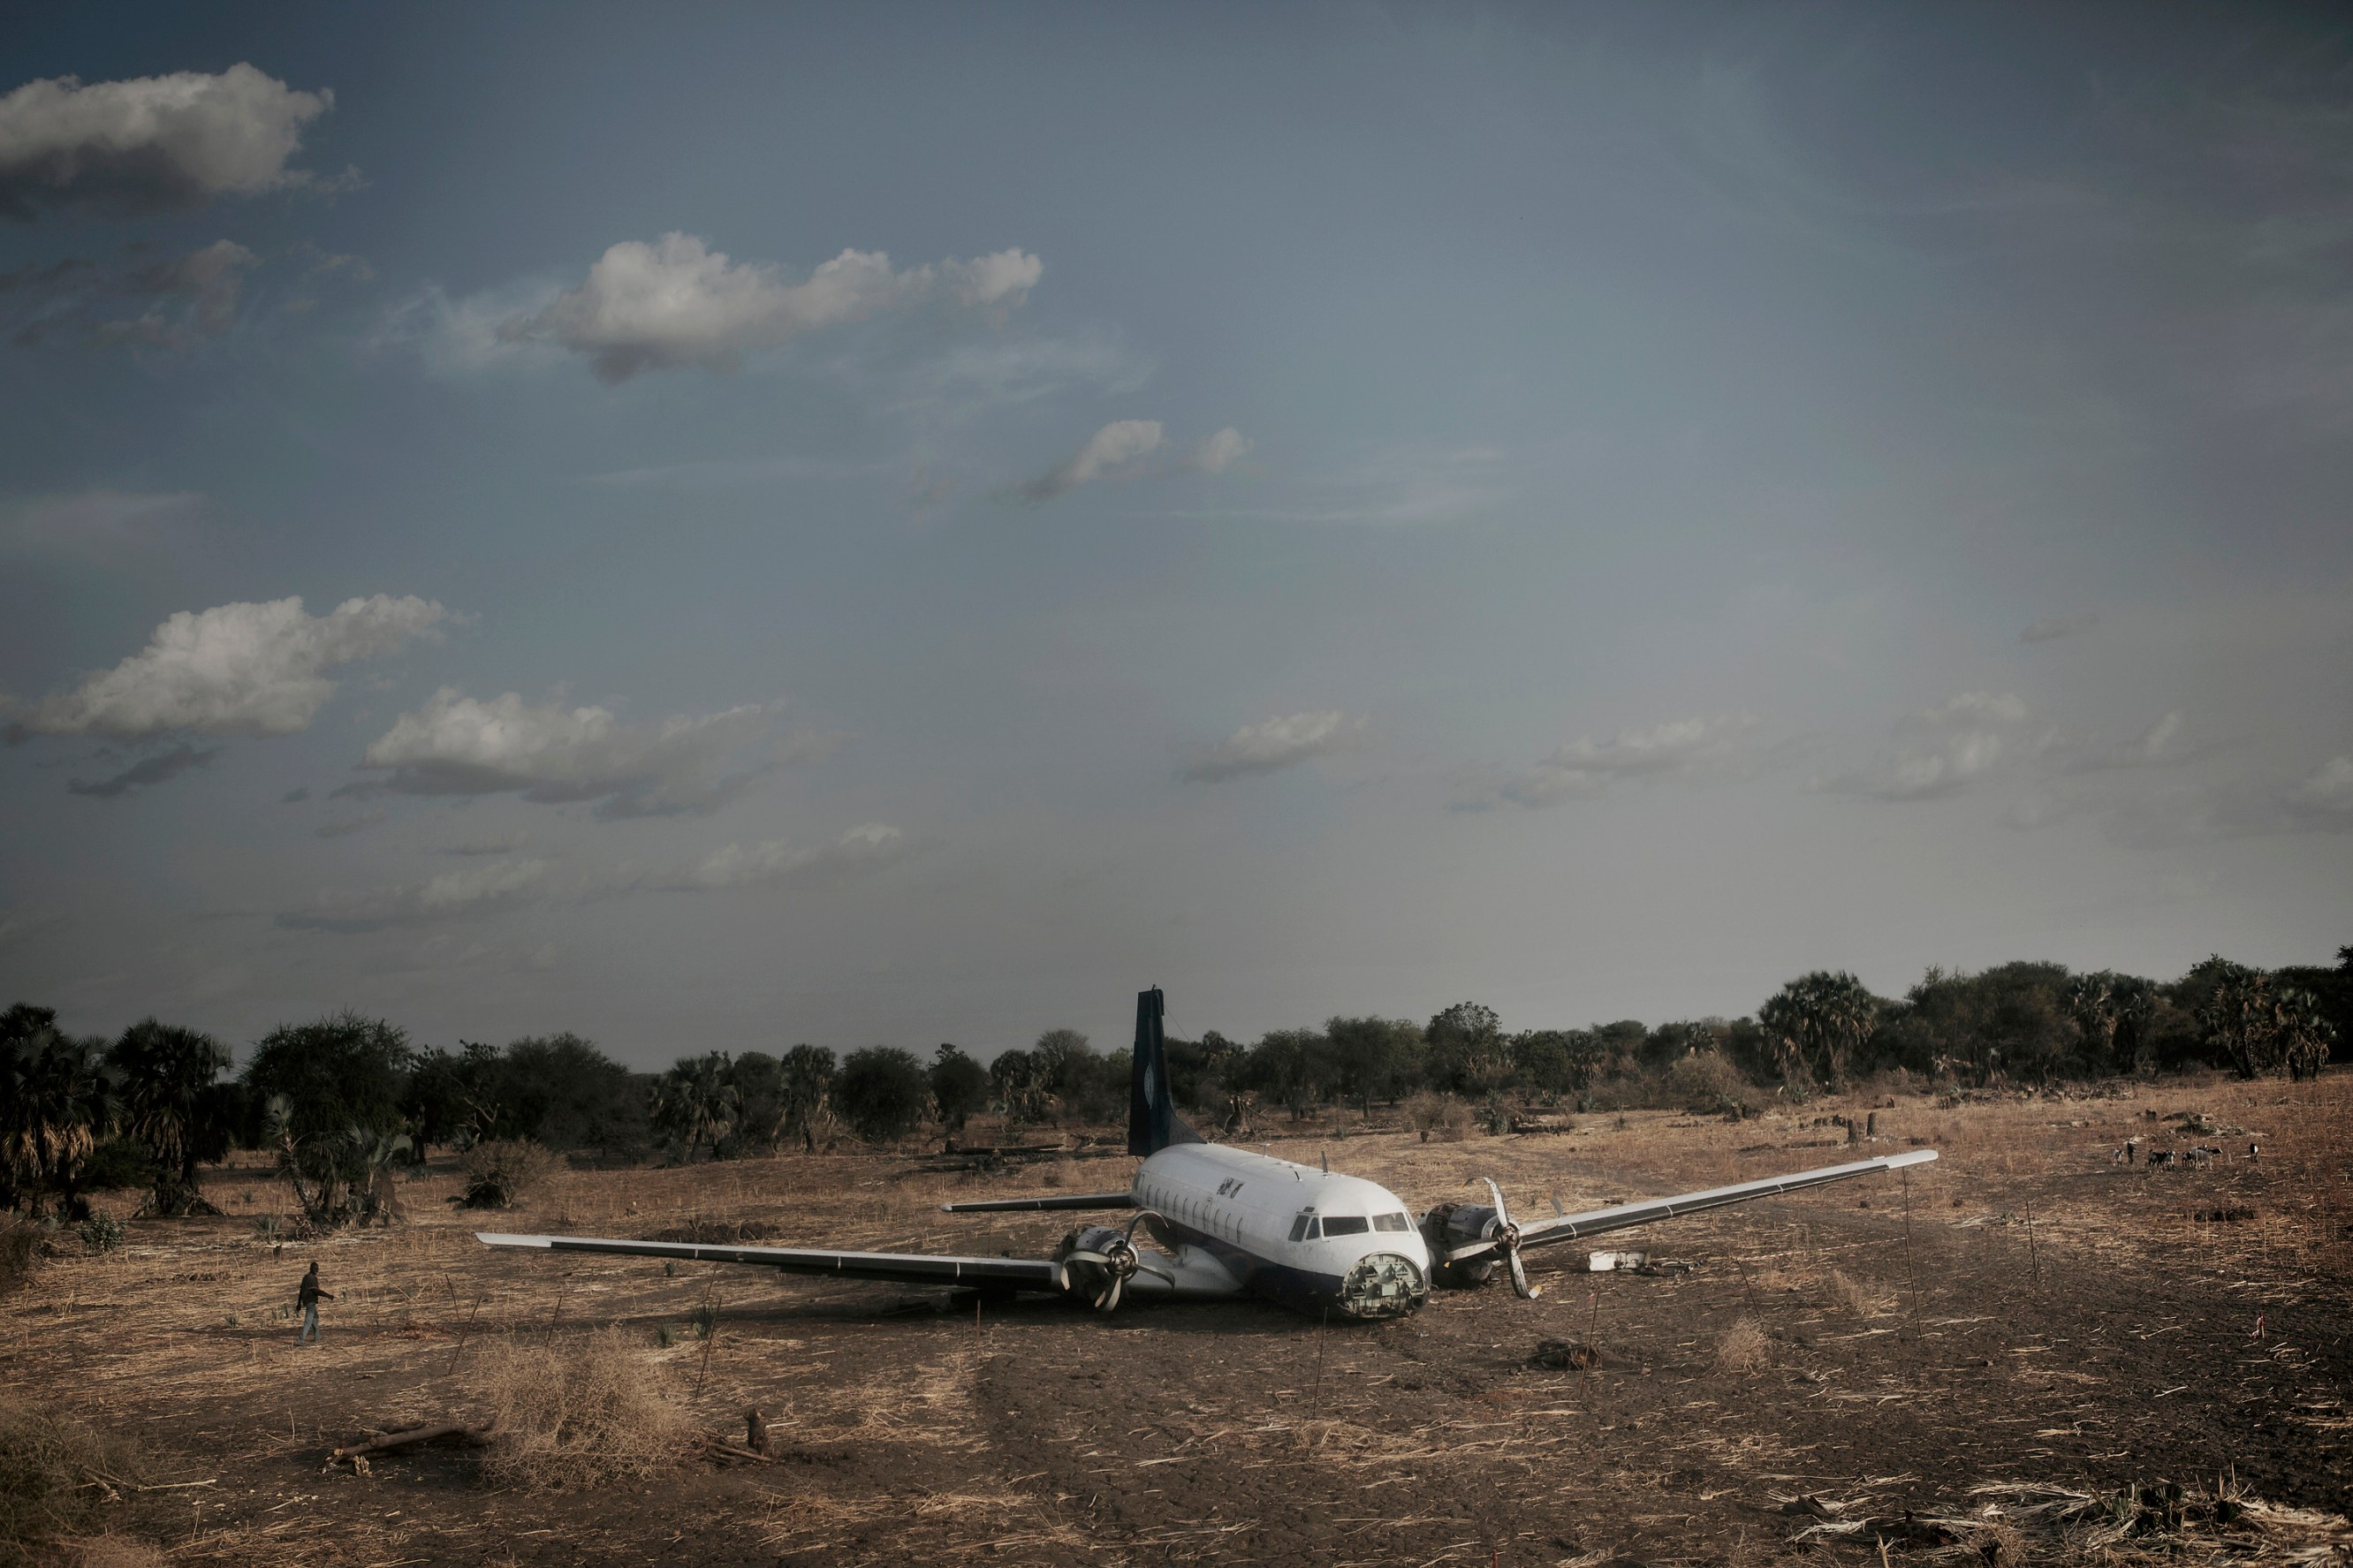 A stricken aeroplane lies, where it crash-landed, at the end of the Maban airstrip.